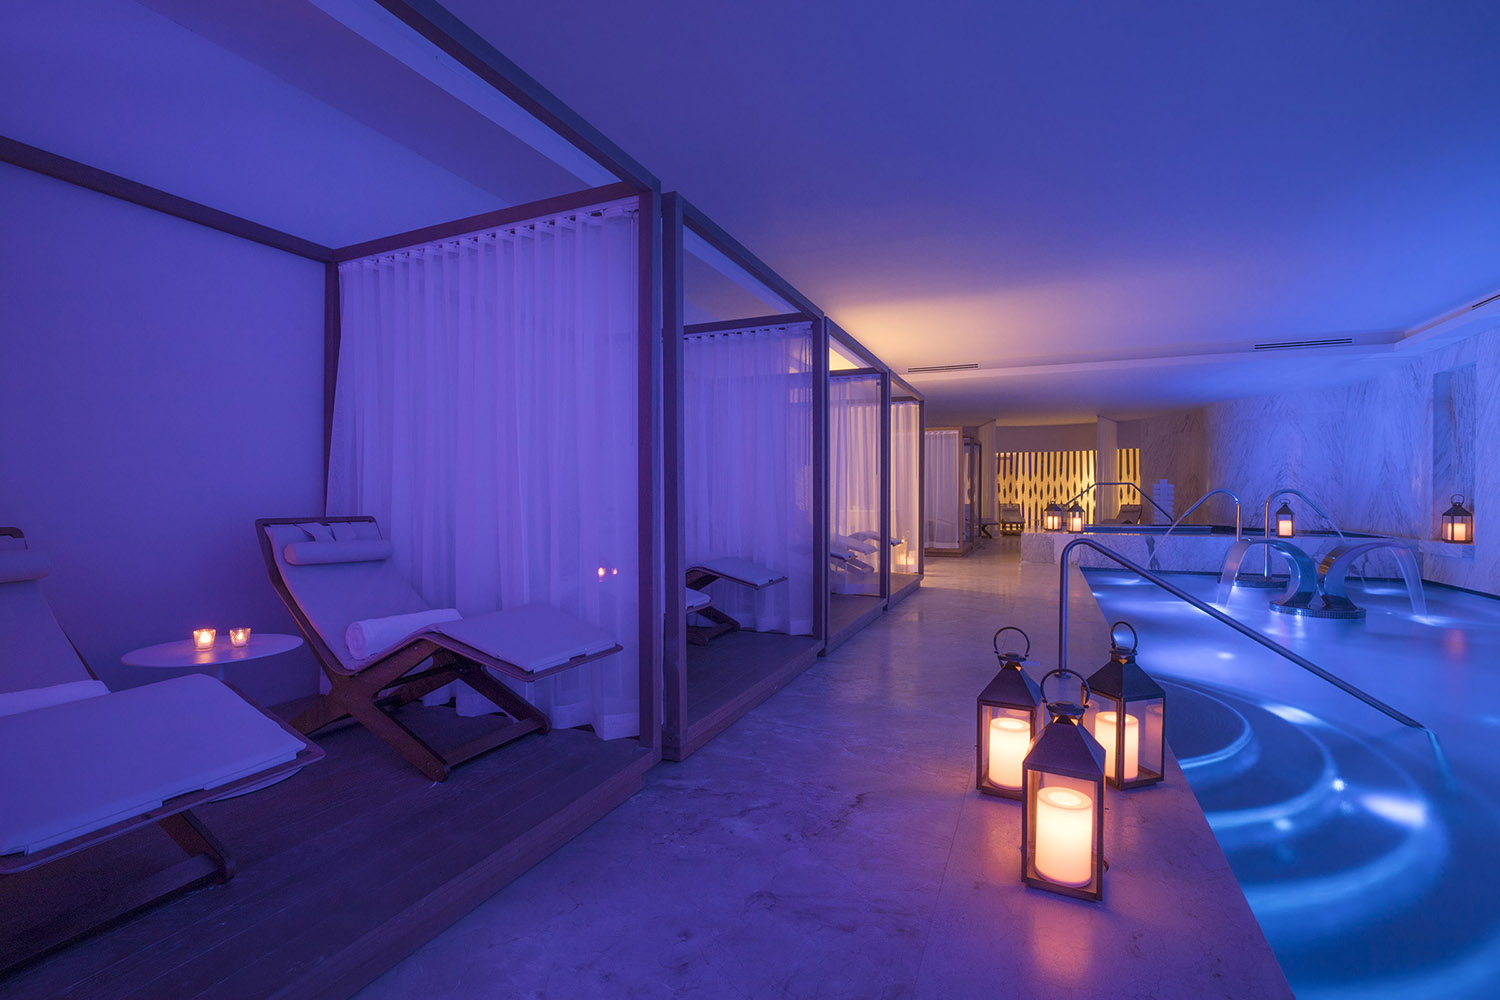 BlancSpa is intimate, indulgent and ready to treat guests to a robust menu of extraoirdinary treatments.